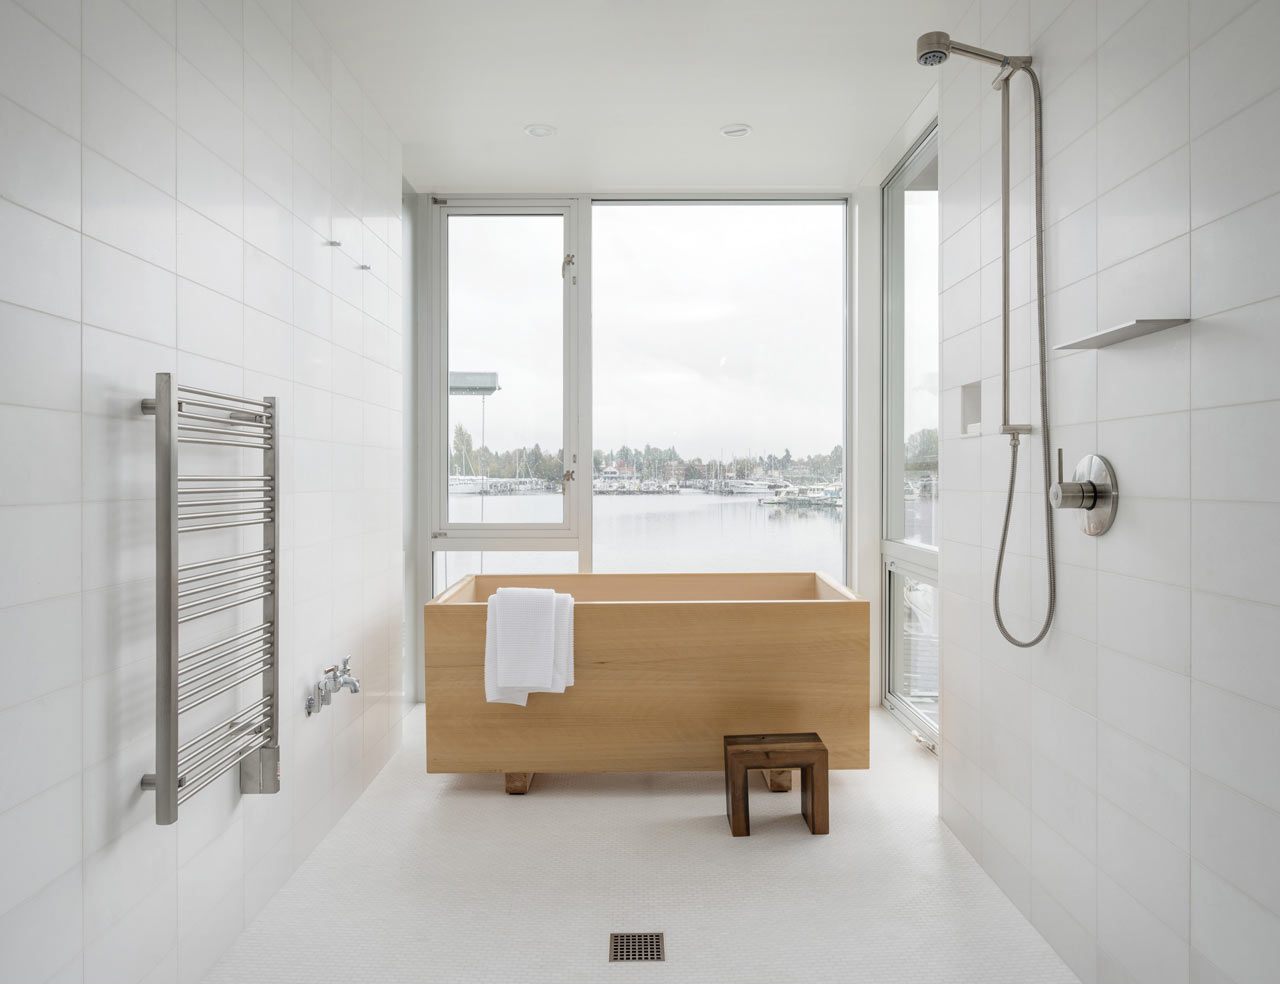 10 Minimalist Bathrooms Of Our Dreams ...